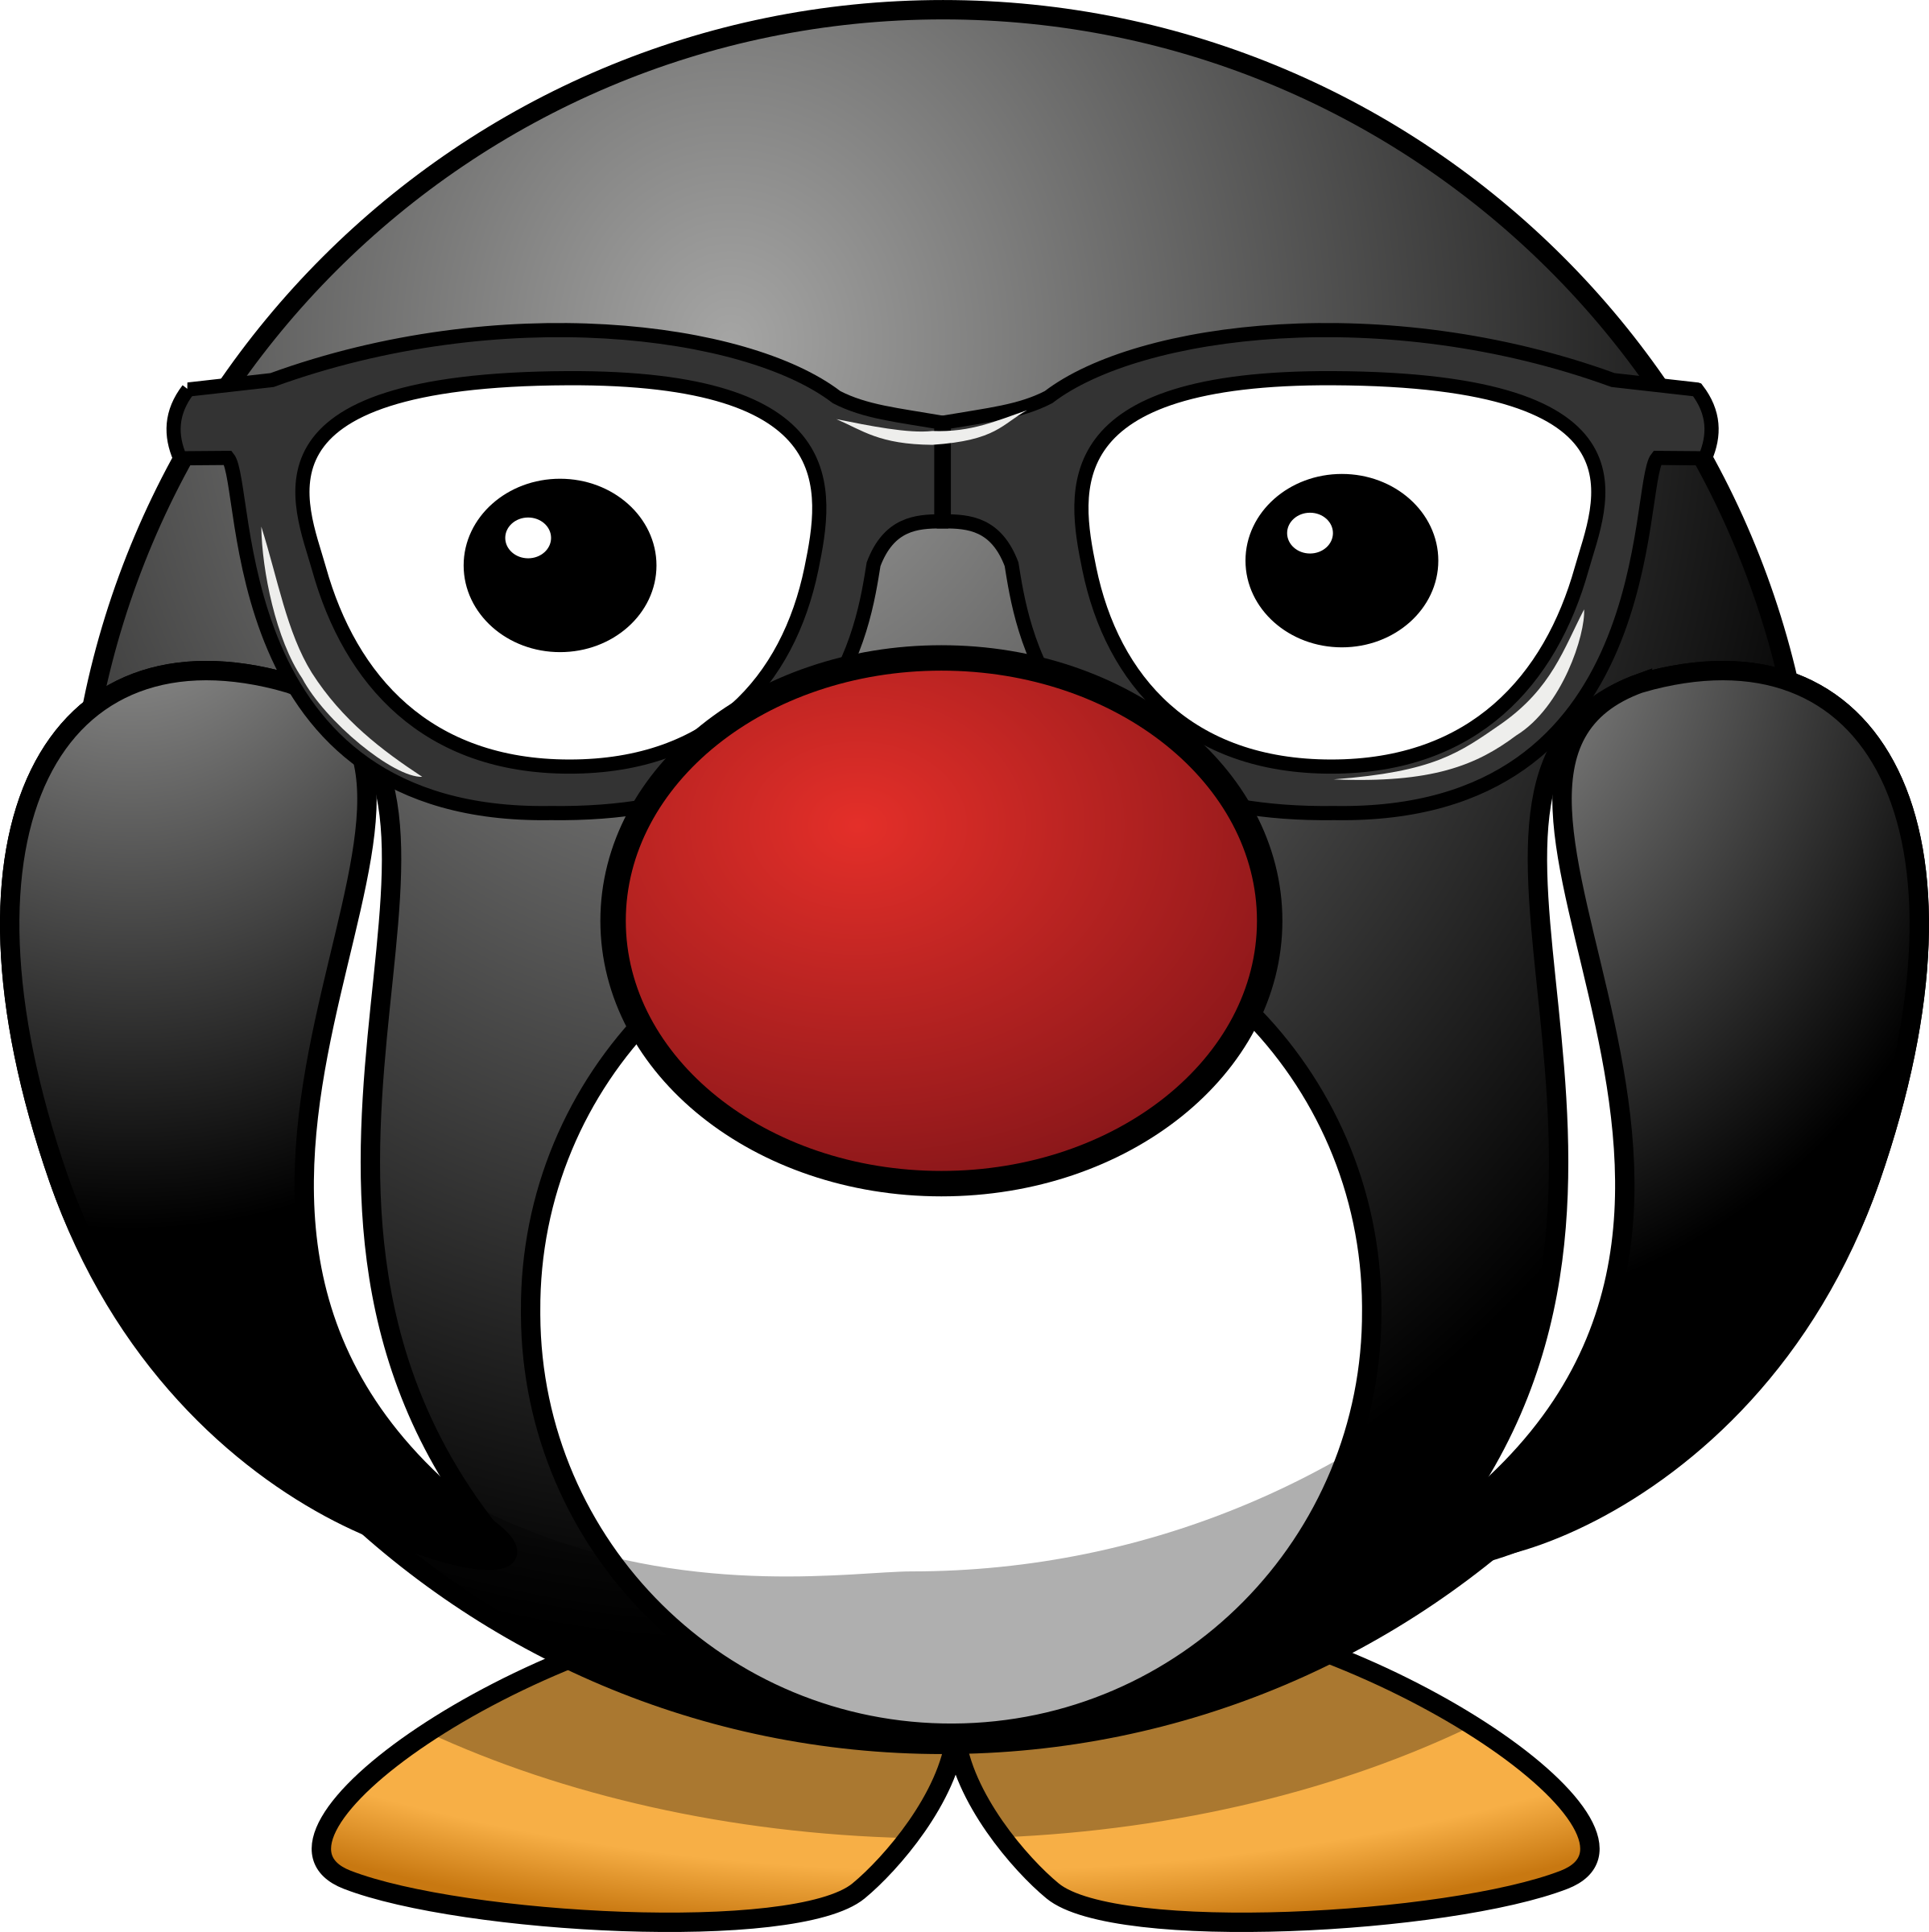 Pengi - We used him as a sticker hero in our app. by contactr